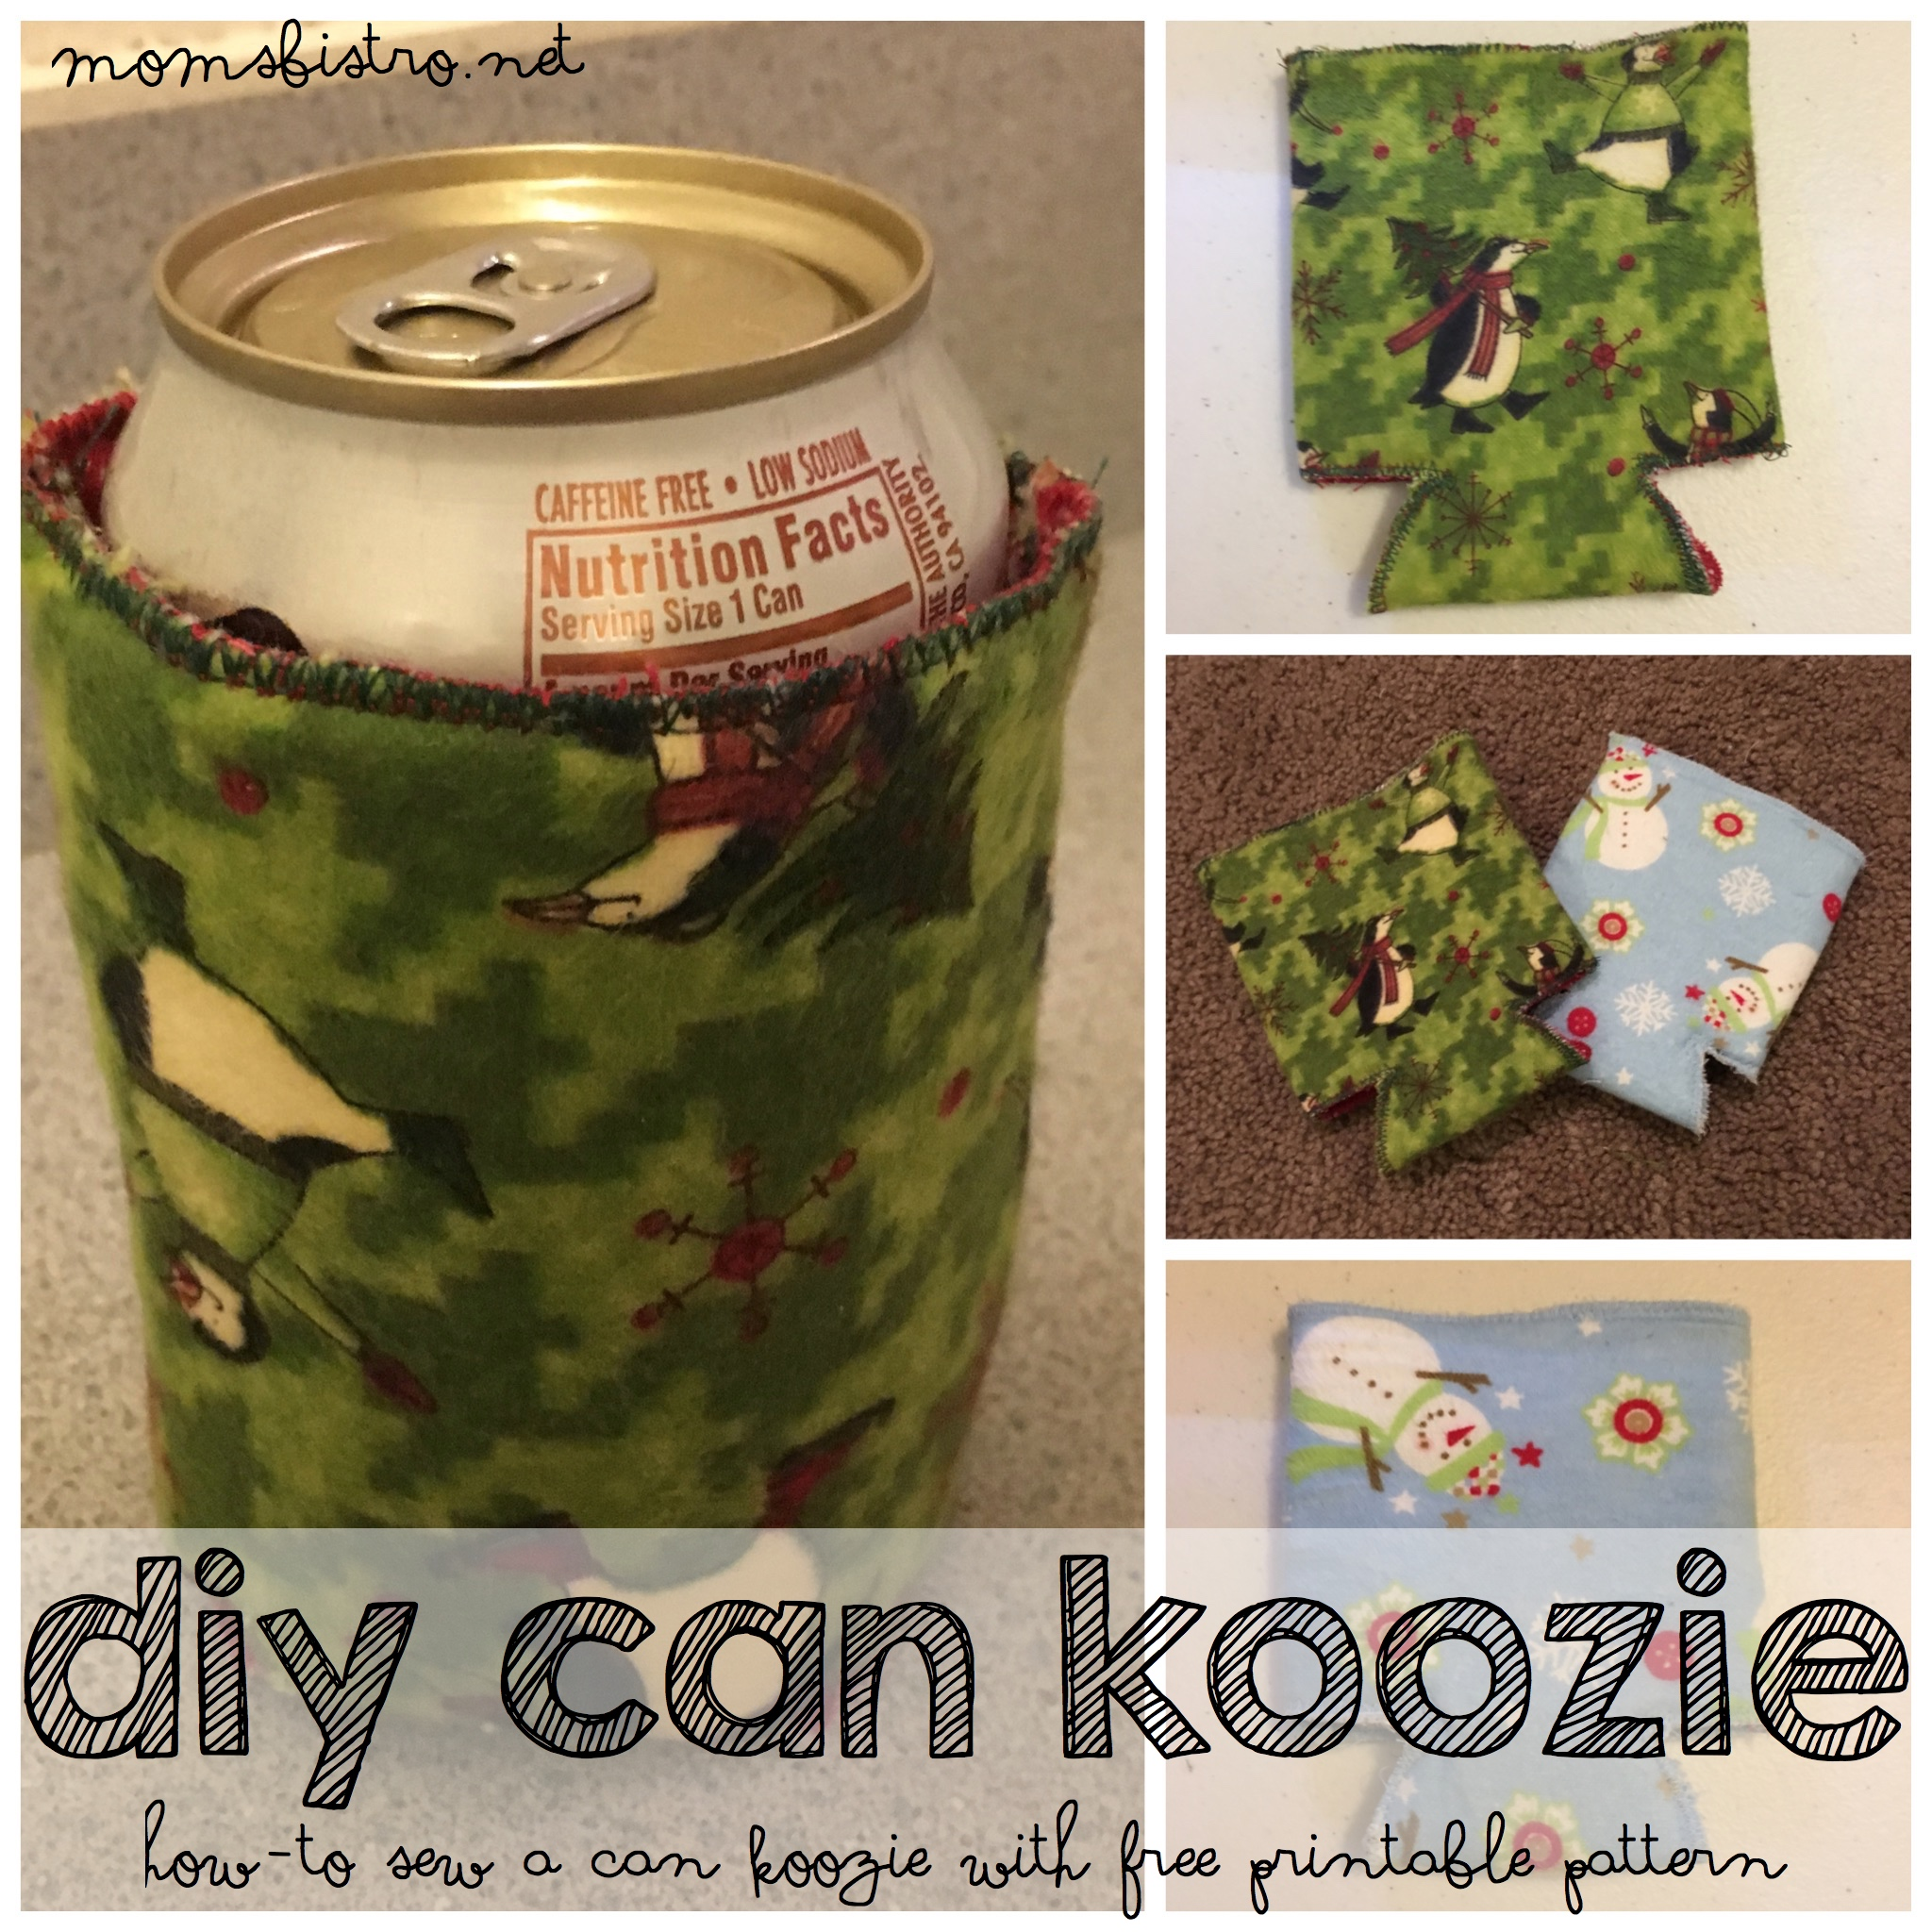 Are You Ready For The Holidays?  Learn How To Make Your Own Can Koozie With This Easy Beginners Sewing Pattern | DIY Can Koozie Tutorial with FREE Printable Pattern